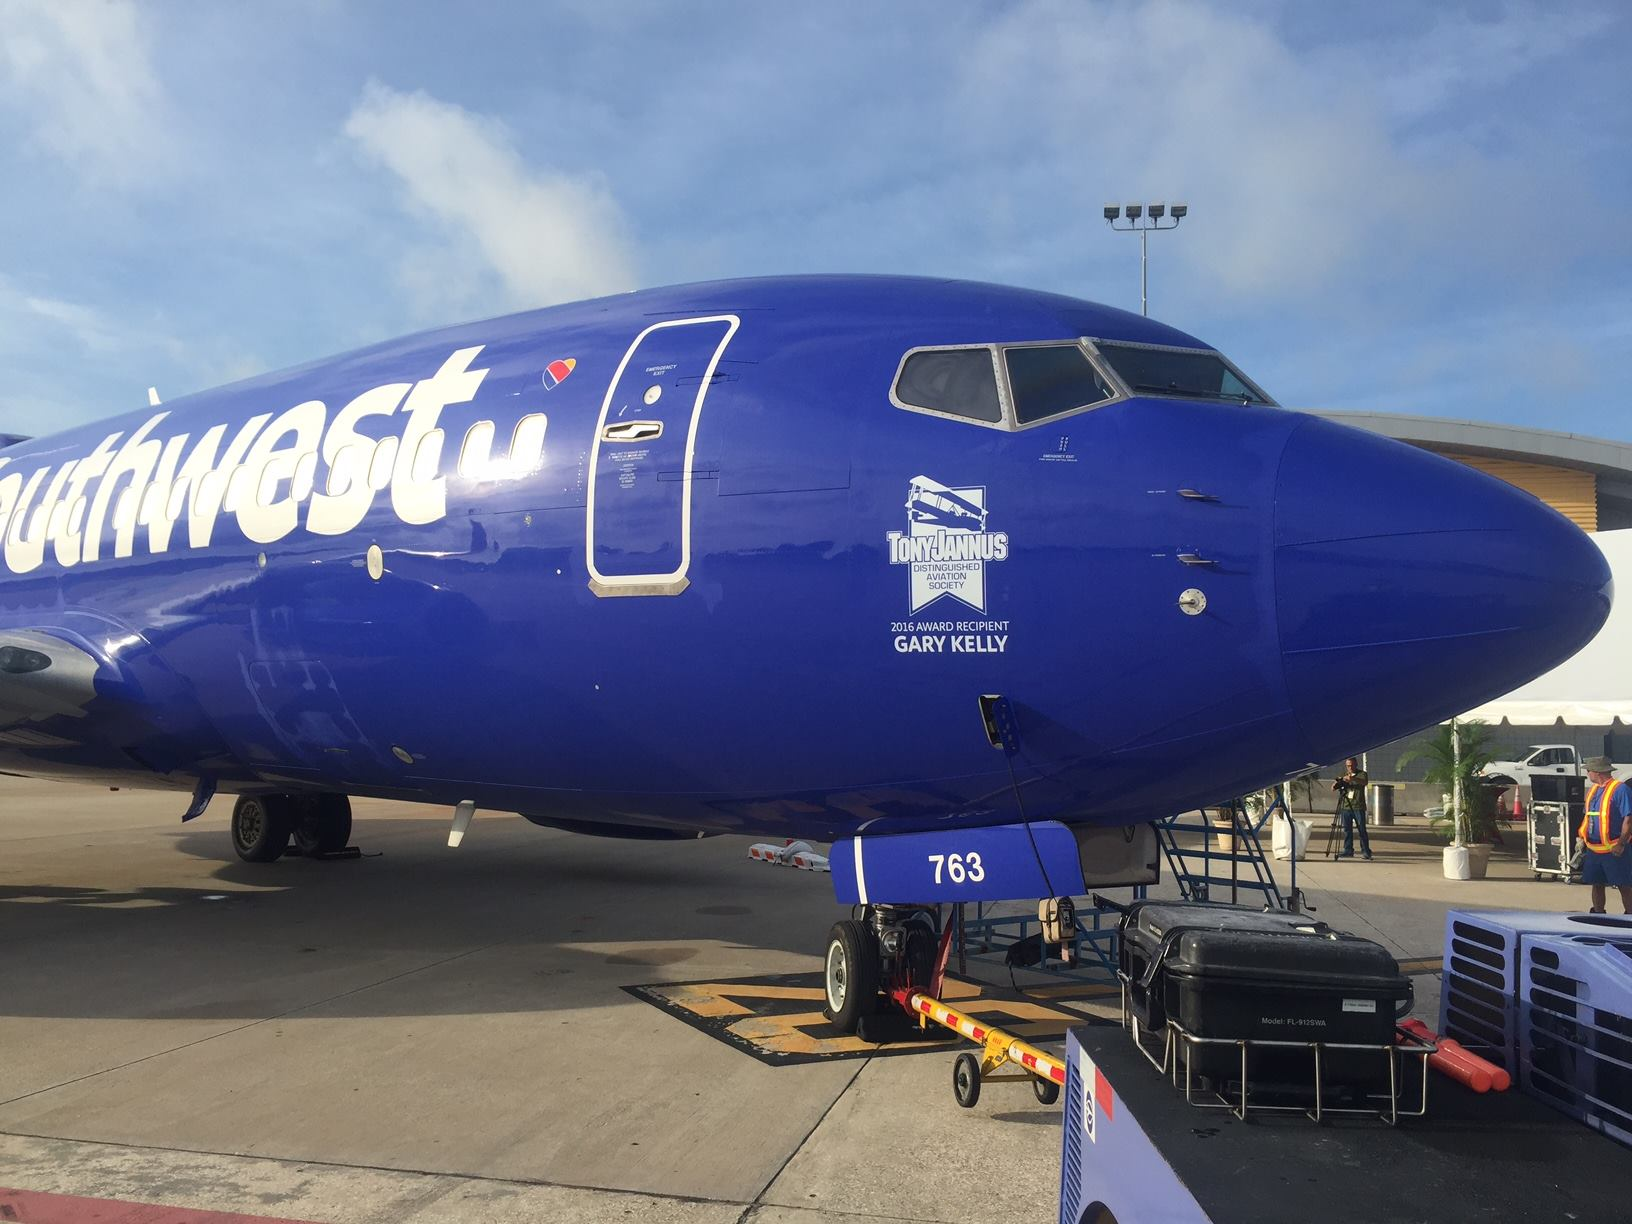 Southwest airline aircraft